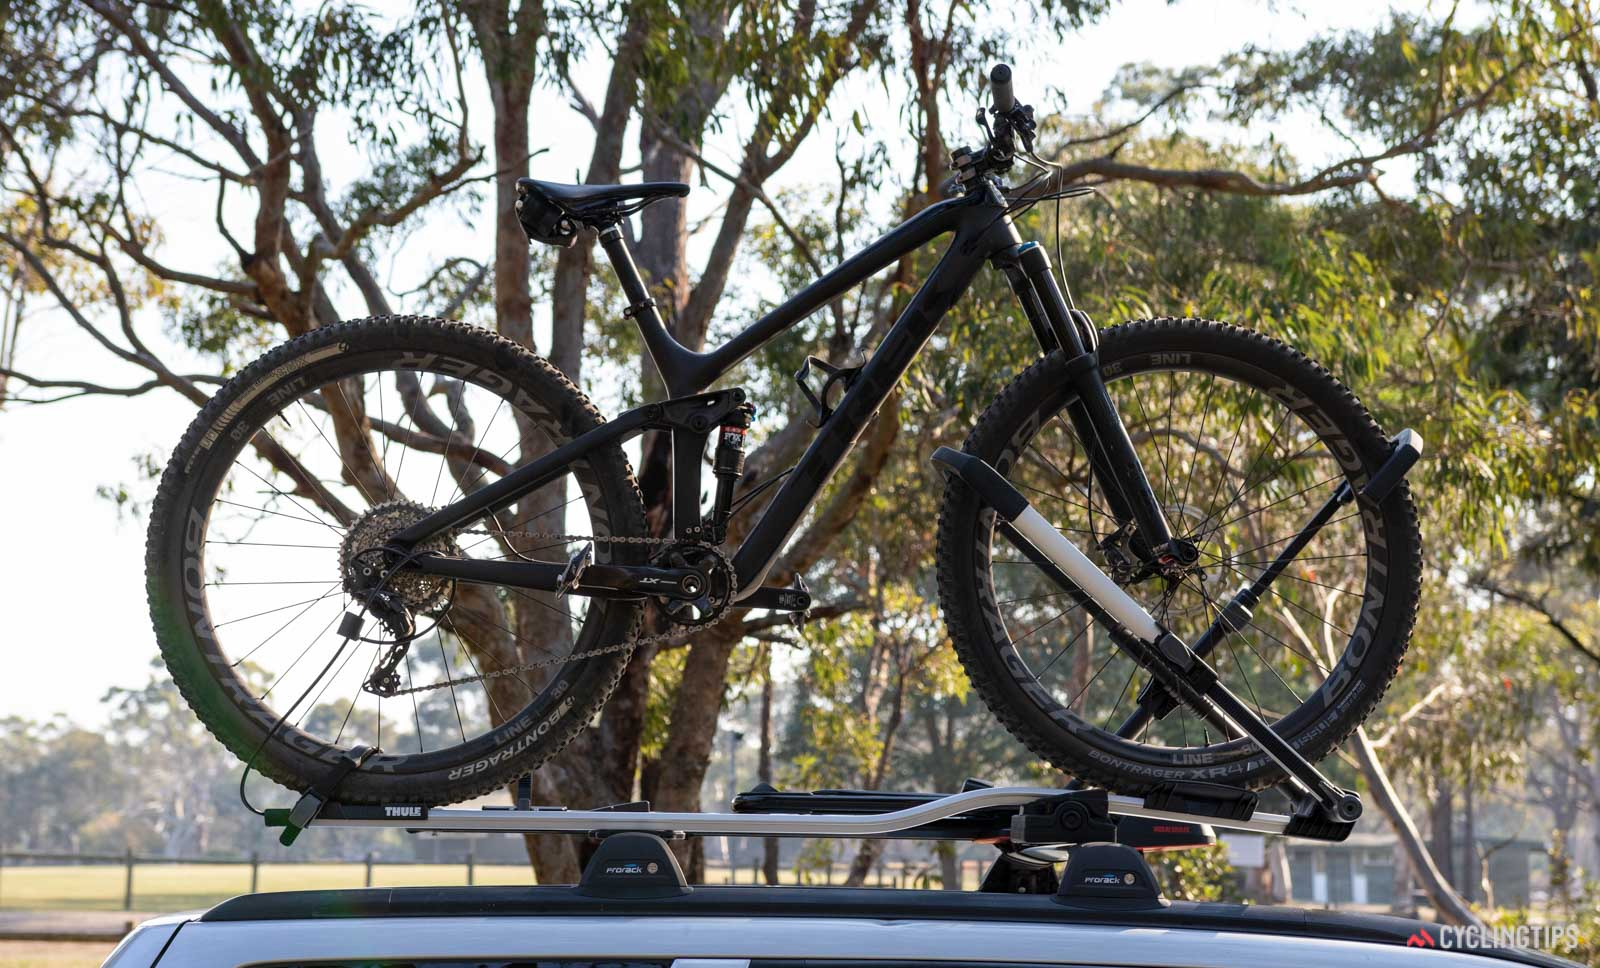 Thule UpRide 599 rack review with bike